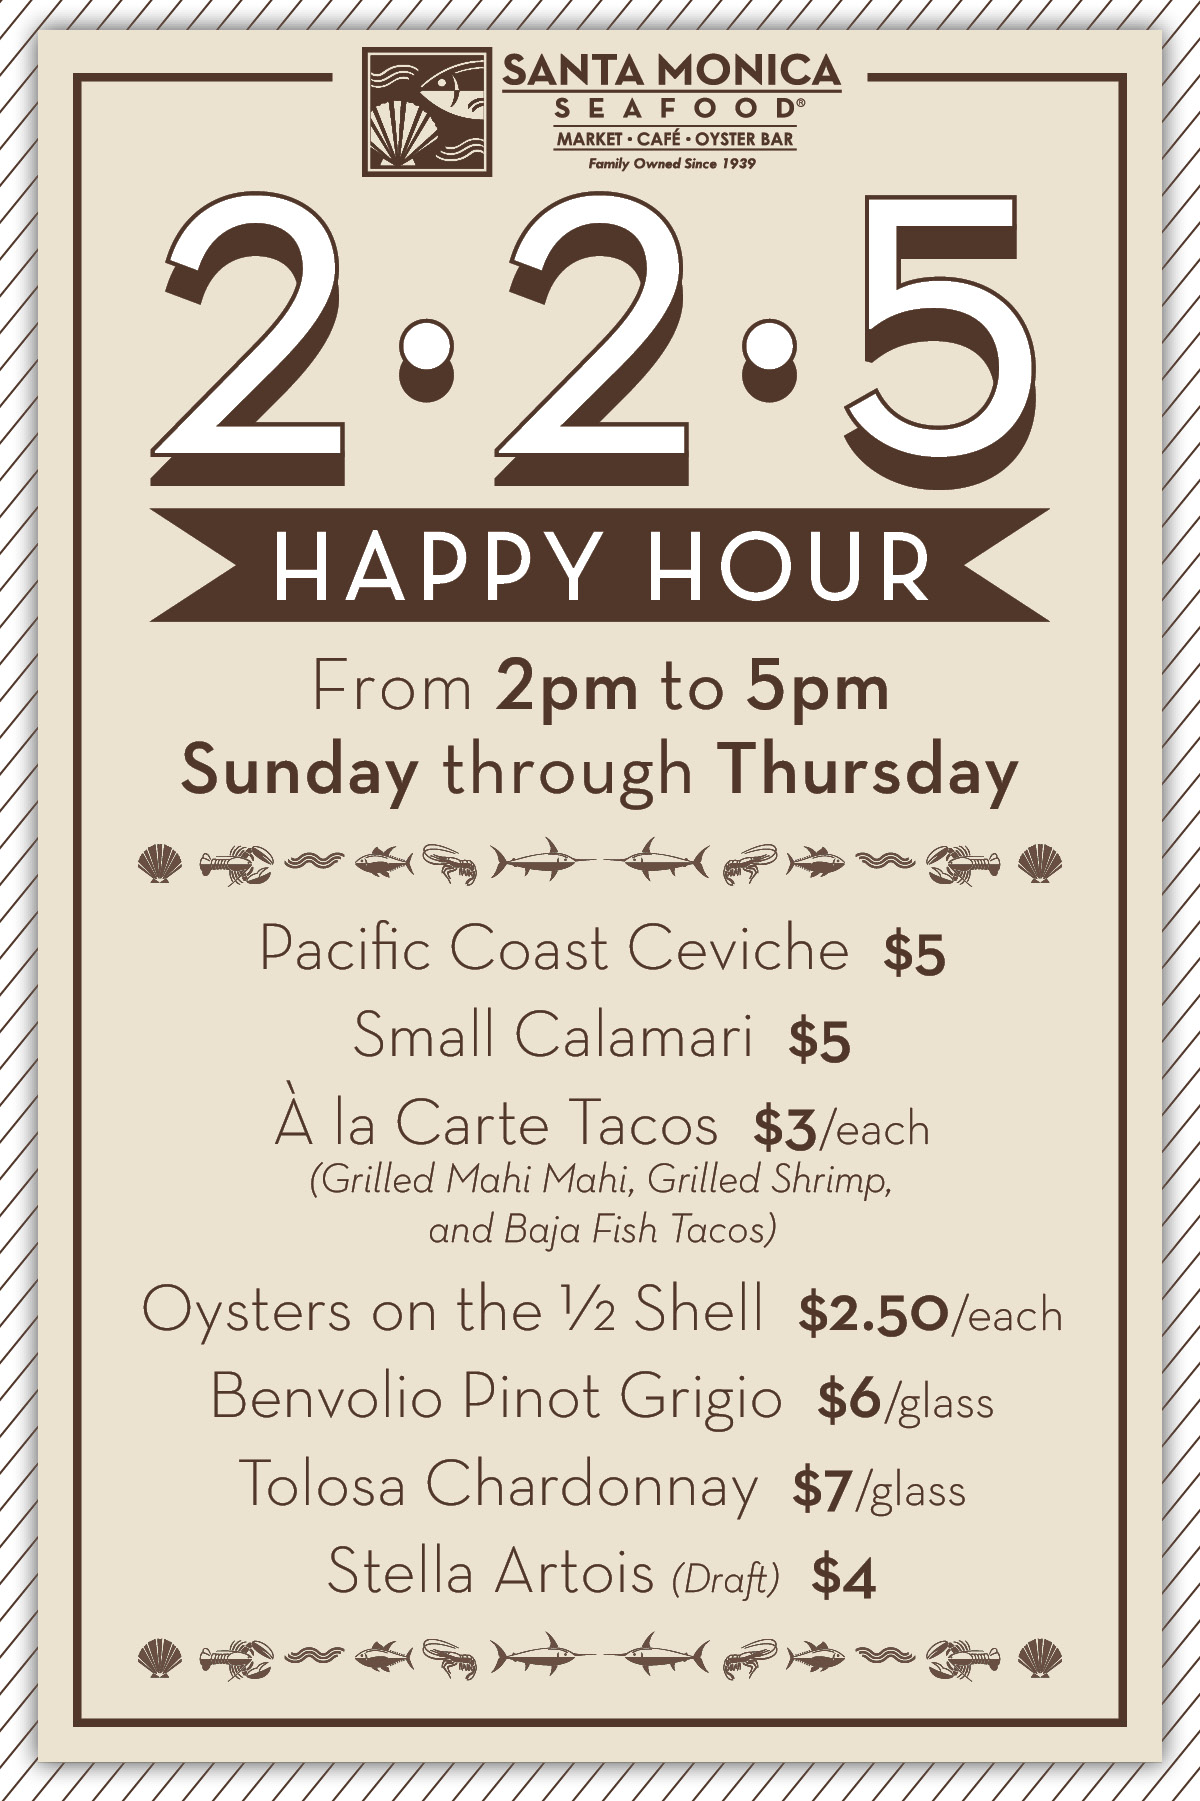 happy hour santa monica seafood market cafe